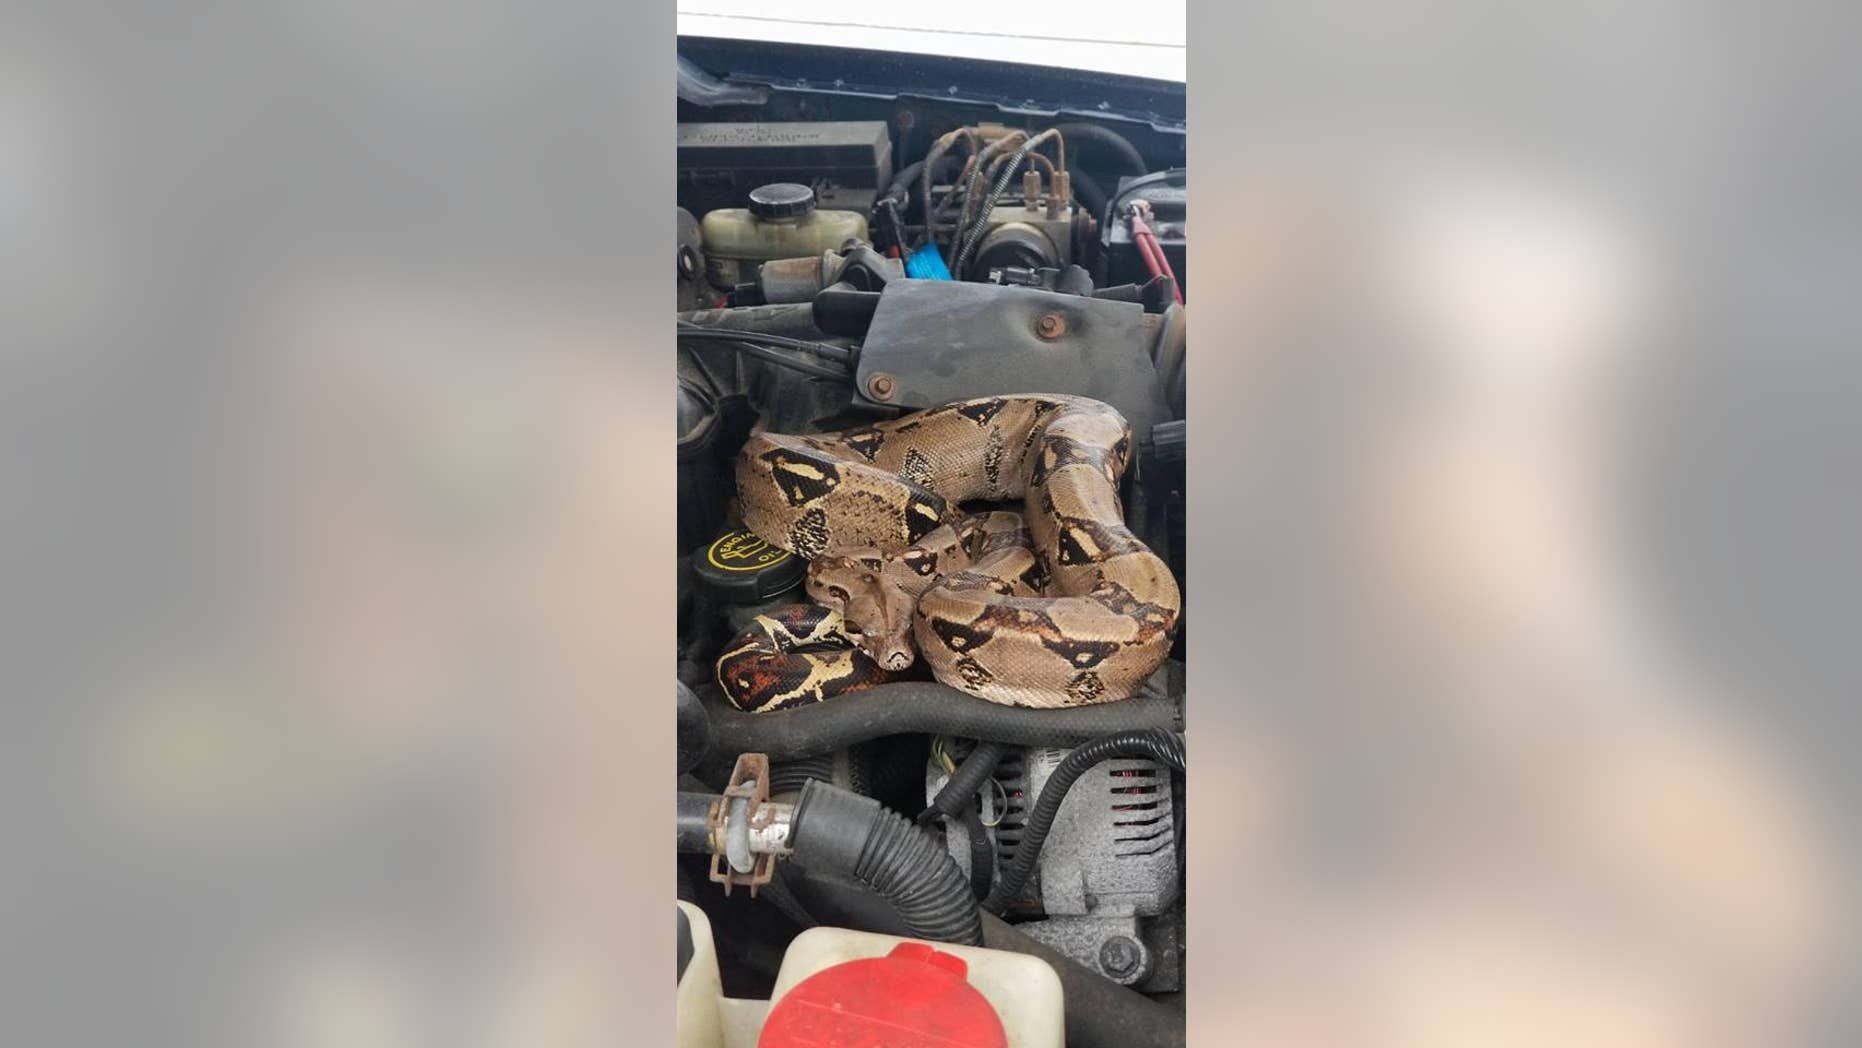 Police in Massachusetts were dispatched to deal with a shocking discovery Saturday after a resident found a boa constrictor beneath the hood of a car.